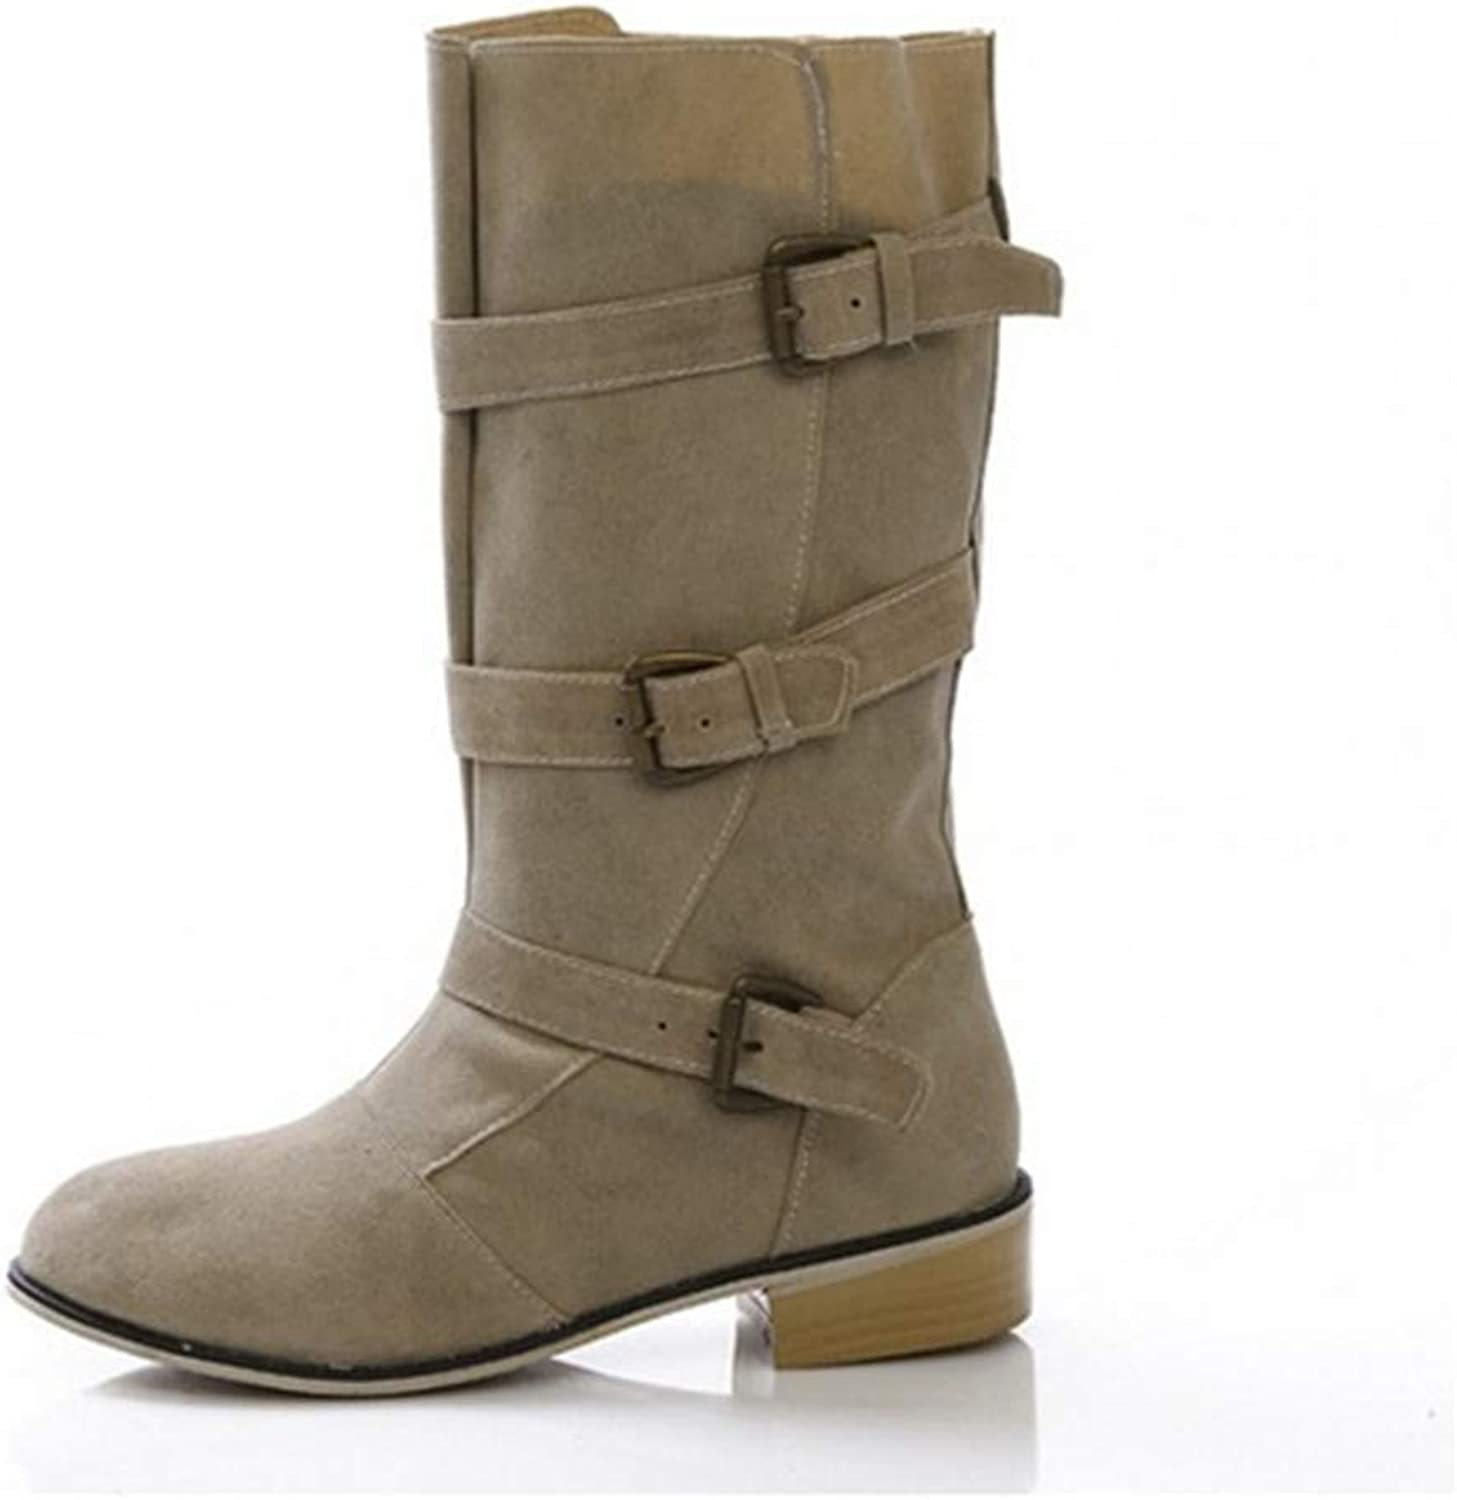 Winter Women's Suede Low Heel Boots Large Size PU Leather Warm Imitation Leather Lining